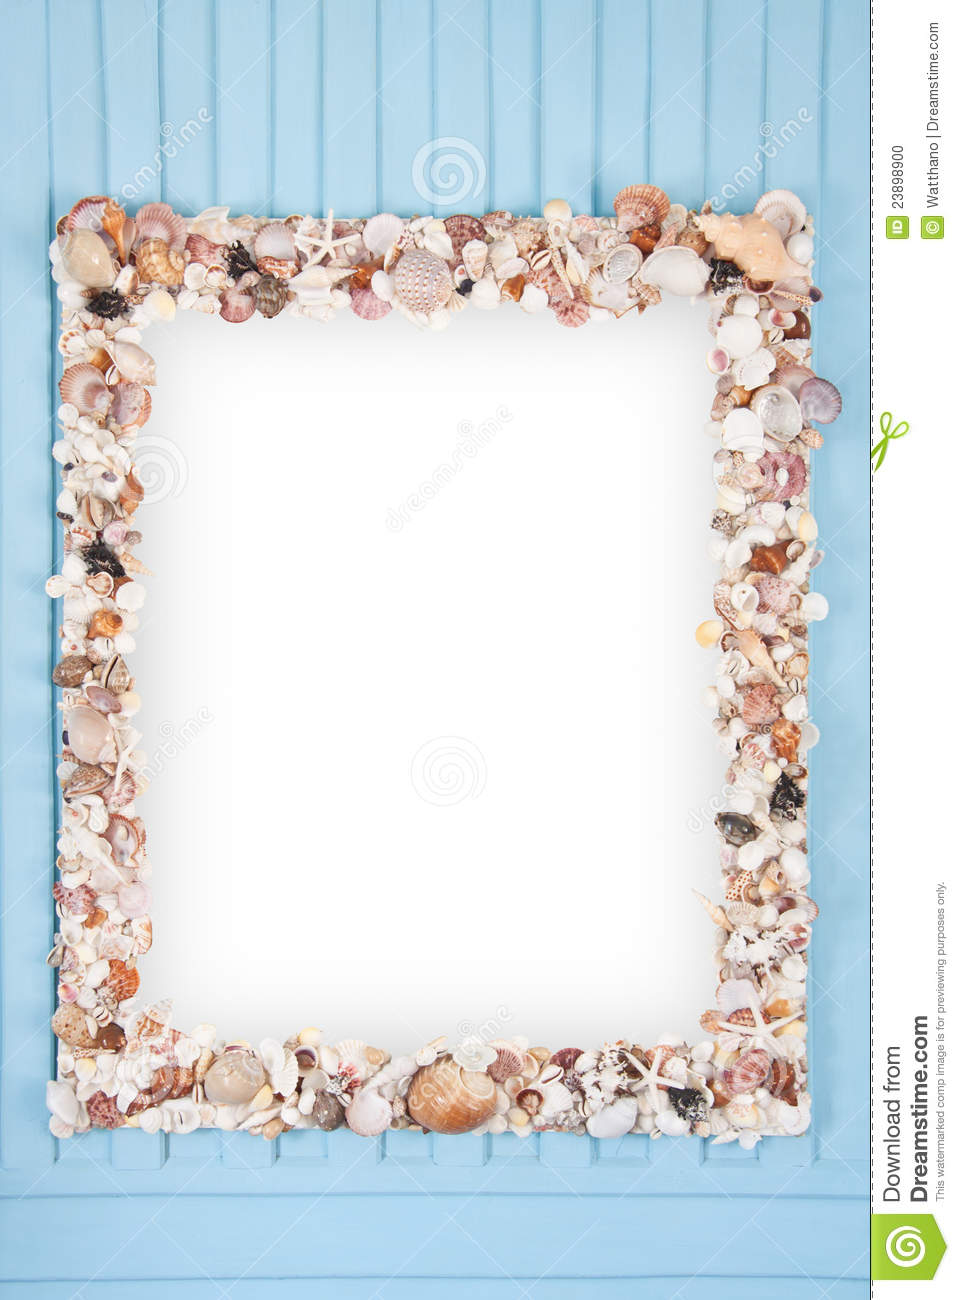 royalty free stock photo download mirror shellfish decoration frame - Decorate Mirror Frame